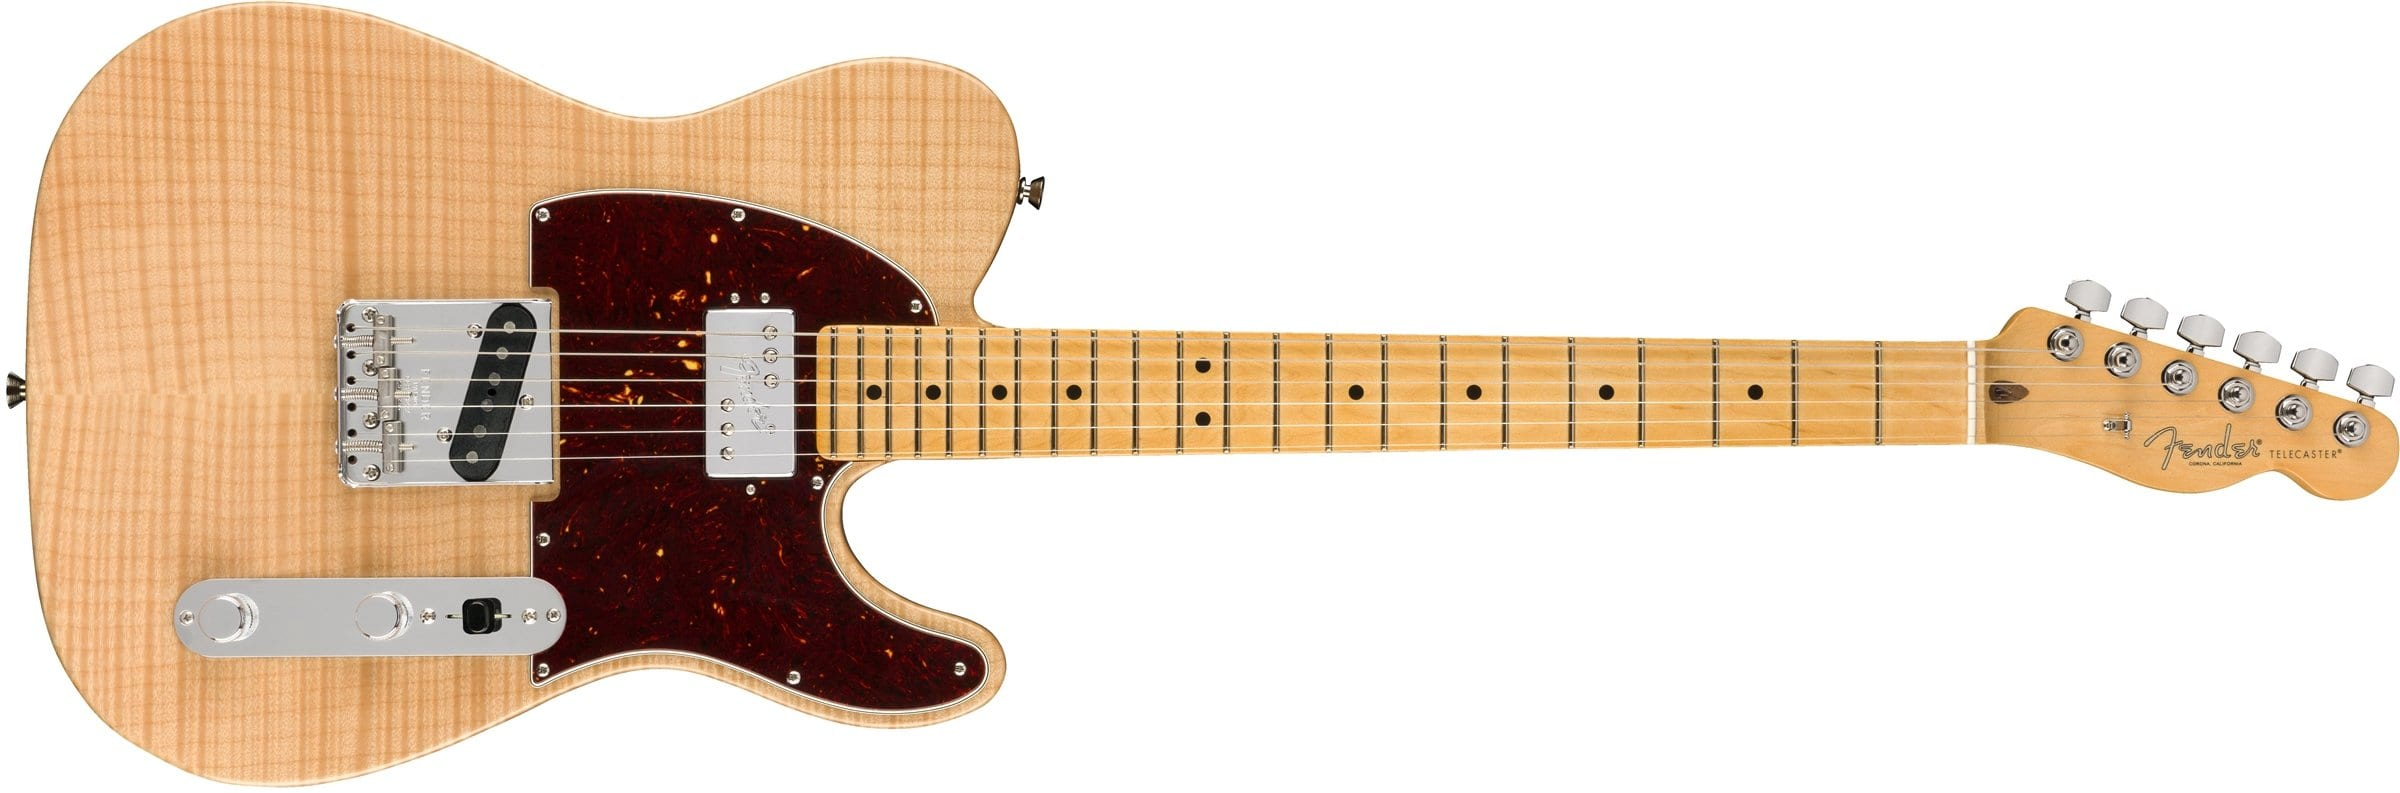 Fender Rarities Series Chambered Flame Top Telecaster